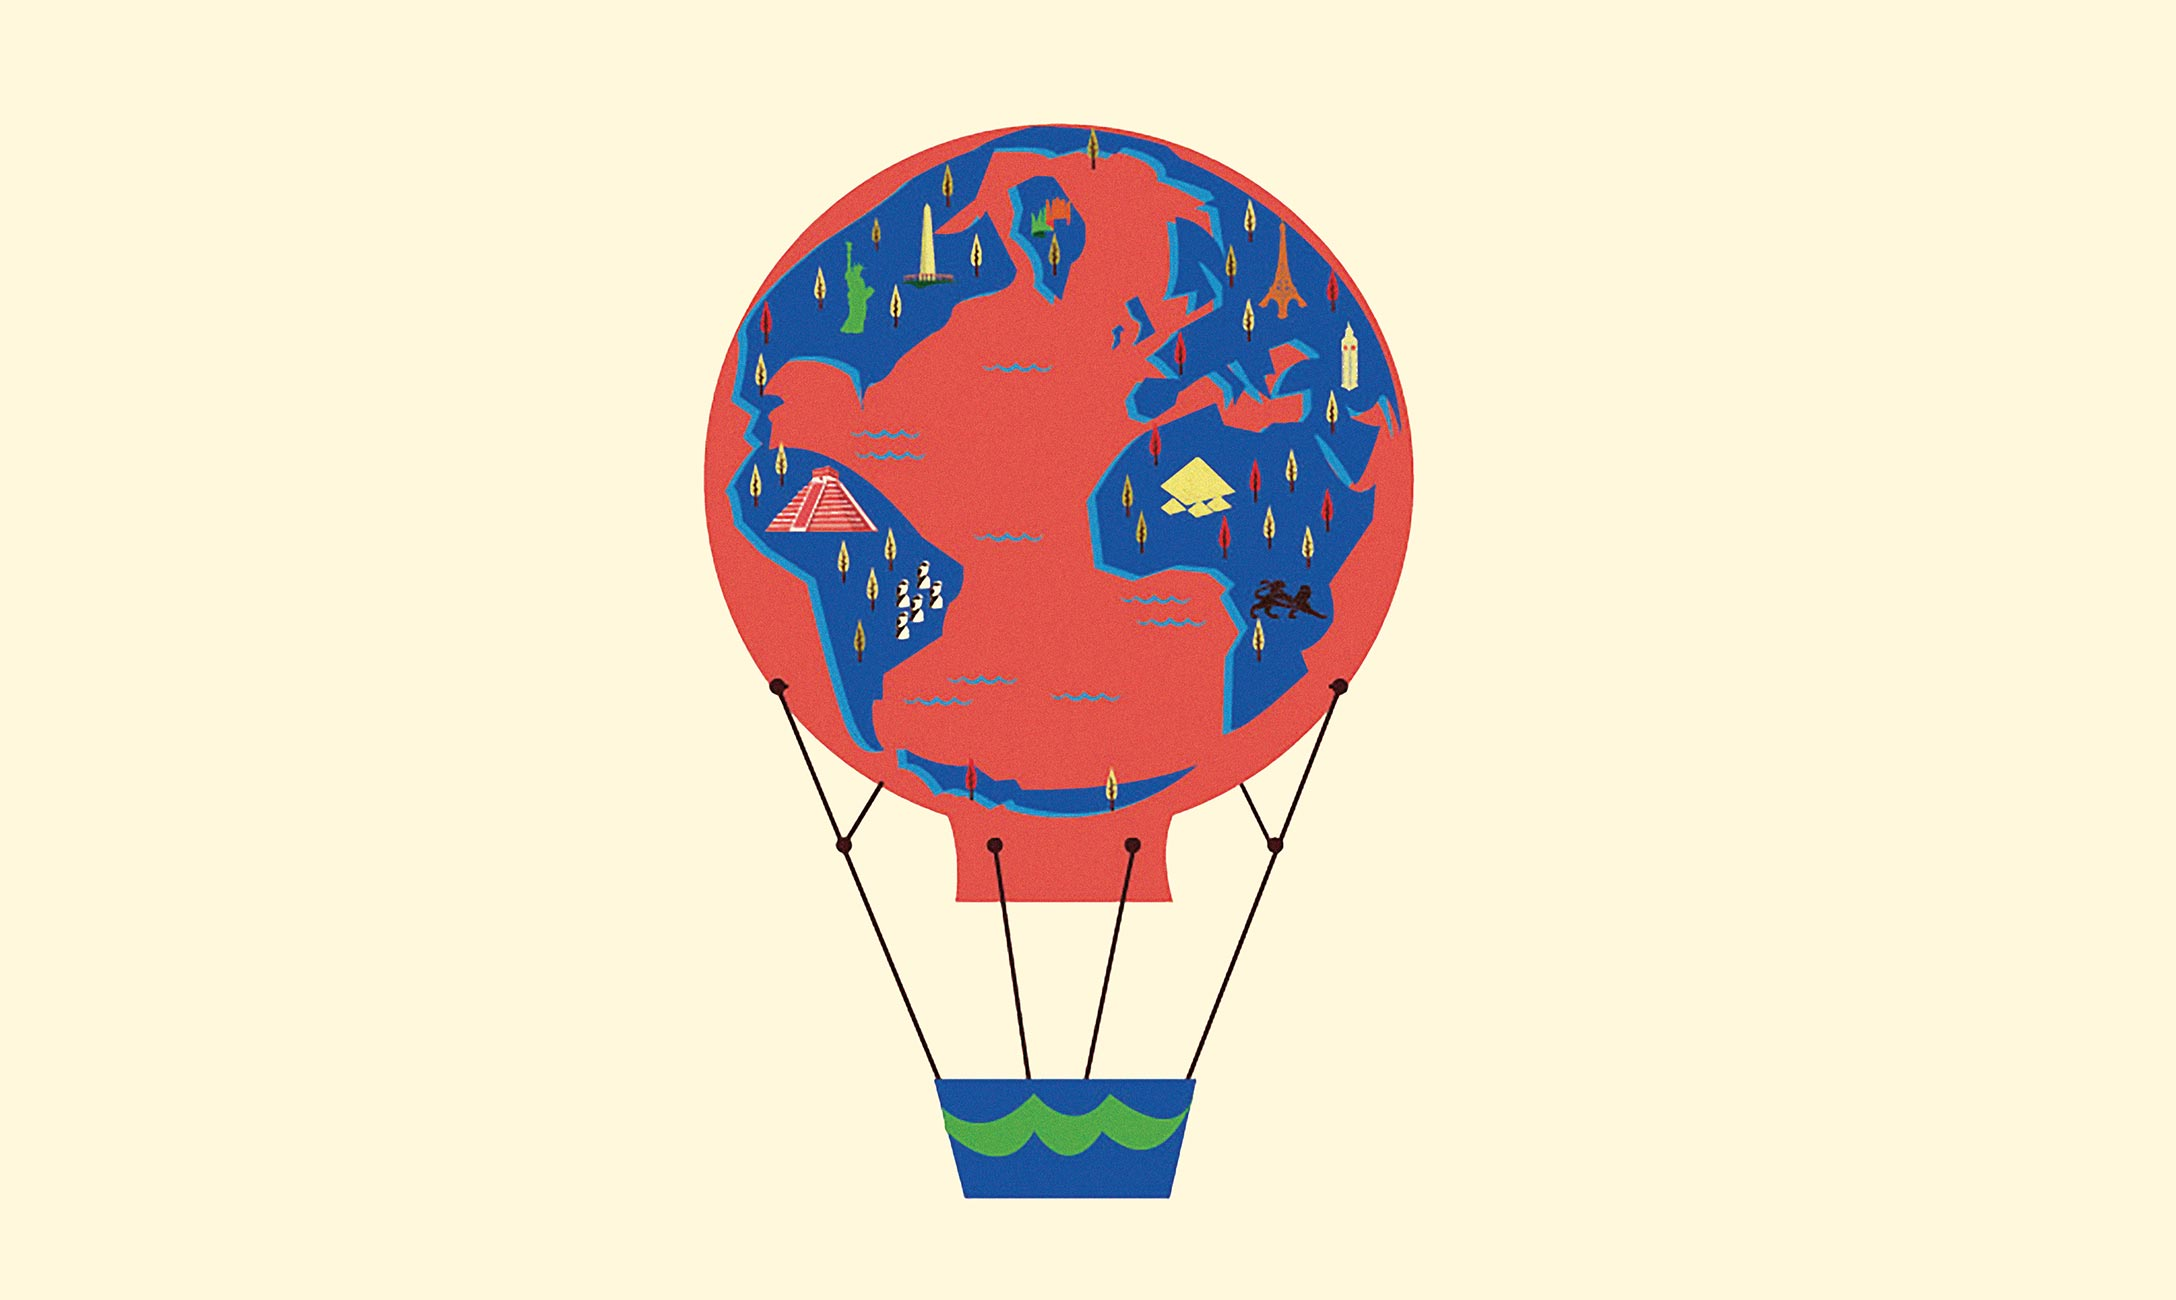 Illustration of hot air balloon decorated like a globe